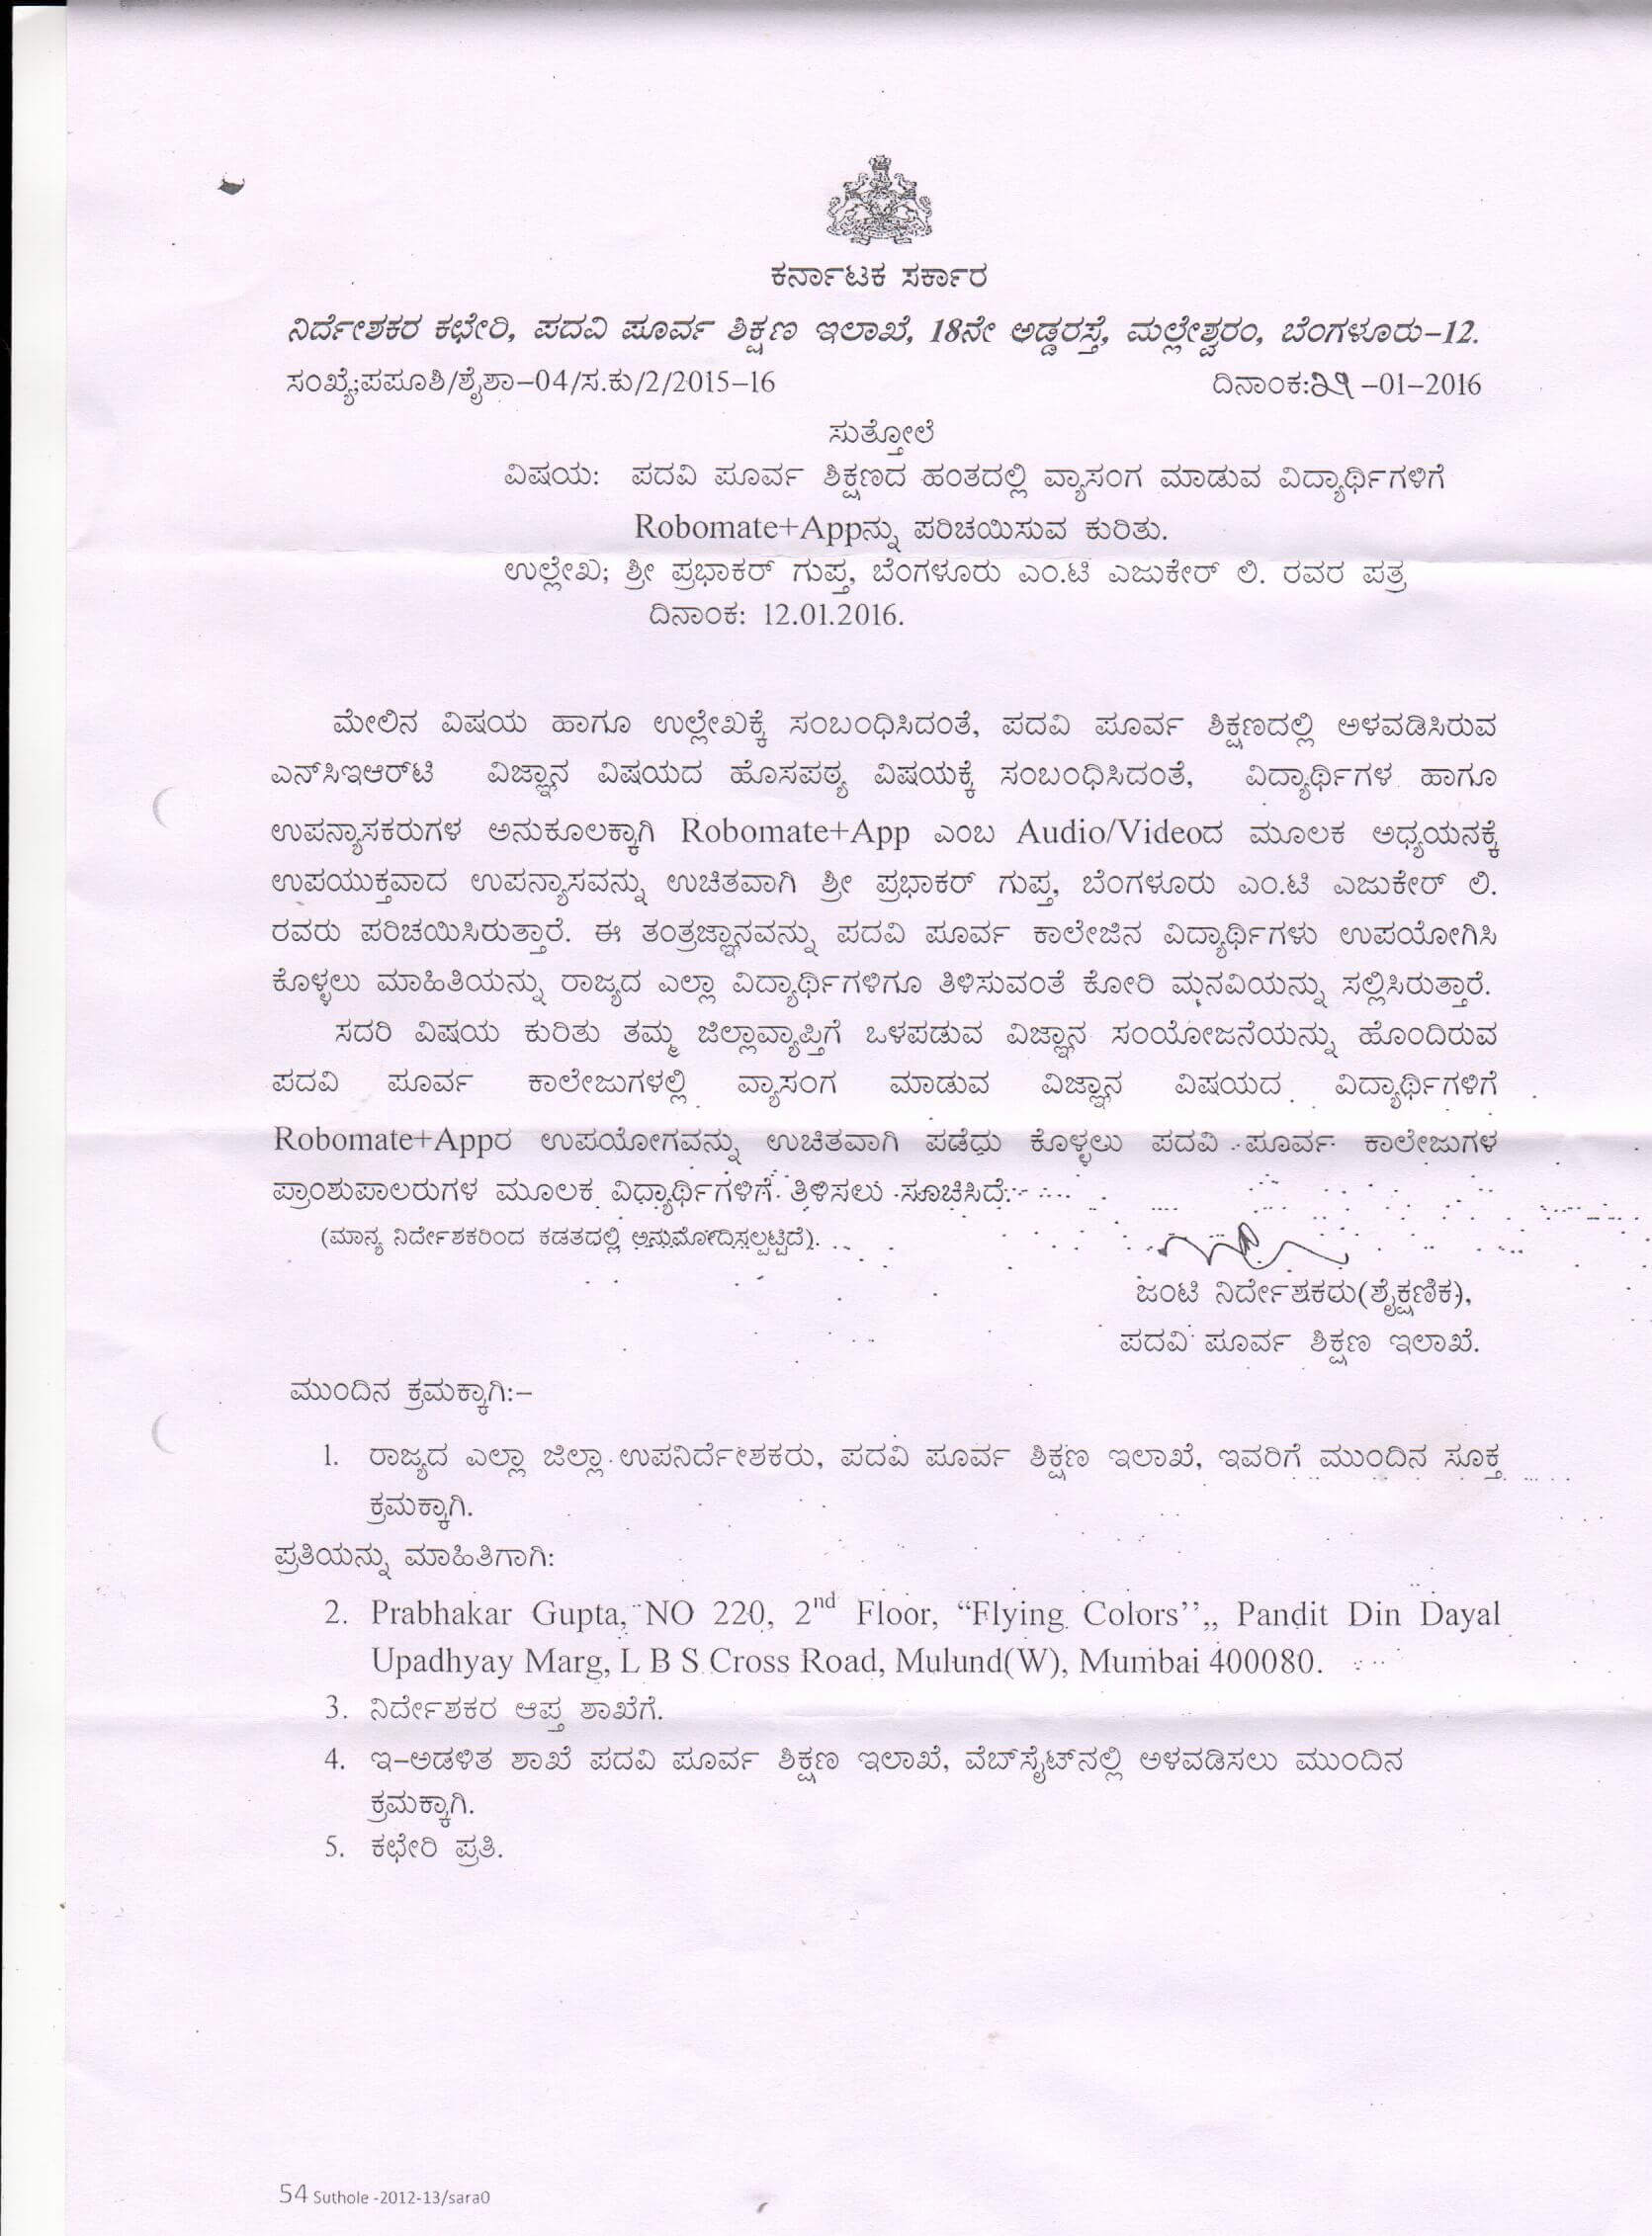 Karnataka pu board gives permission to students to use robomate to karnataka pu board gives permission to students to use robomate to study thecheapjerseys Choice Image